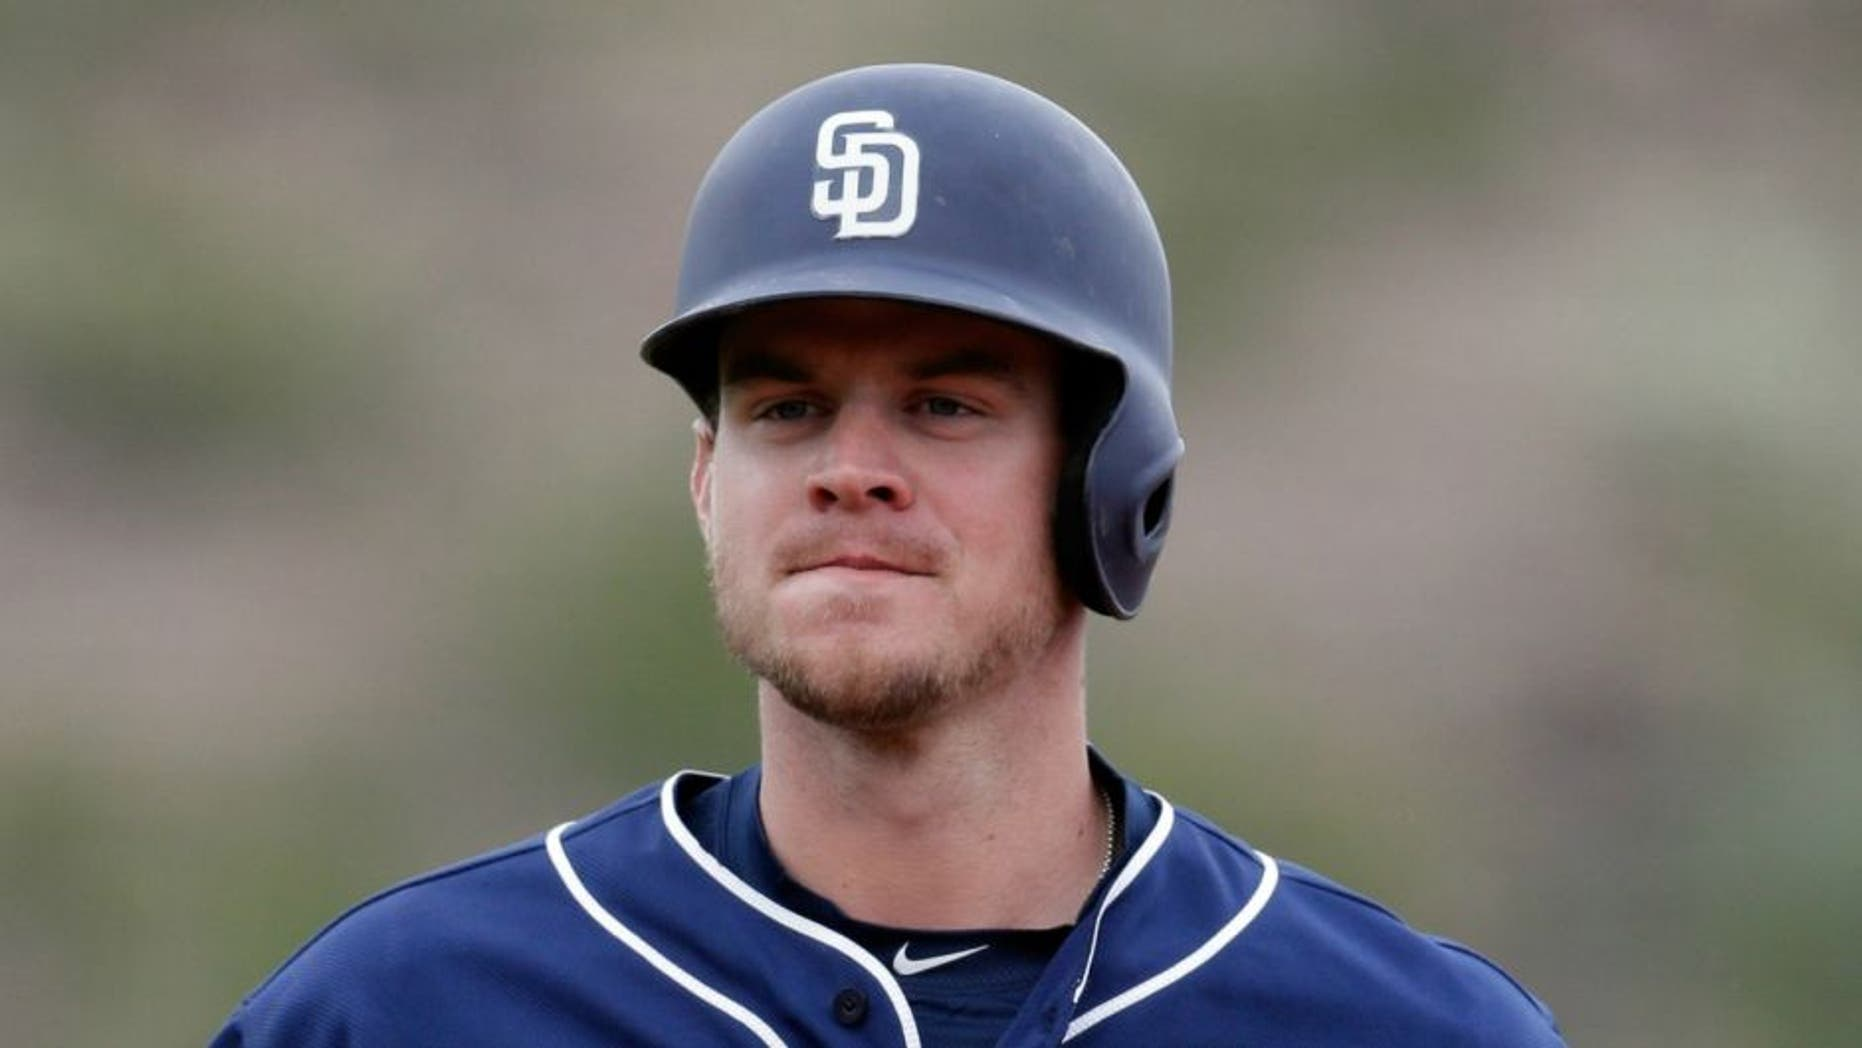 Feb 27, 2017; Tempe, AZ, USA; San Diego Padres first baseman Wil Myers (4) against the Los Angeles Angels during a spring training game at Tempe Diablo Stadium. Mandatory Credit: Rick Scuteri-USA TODAY Sports